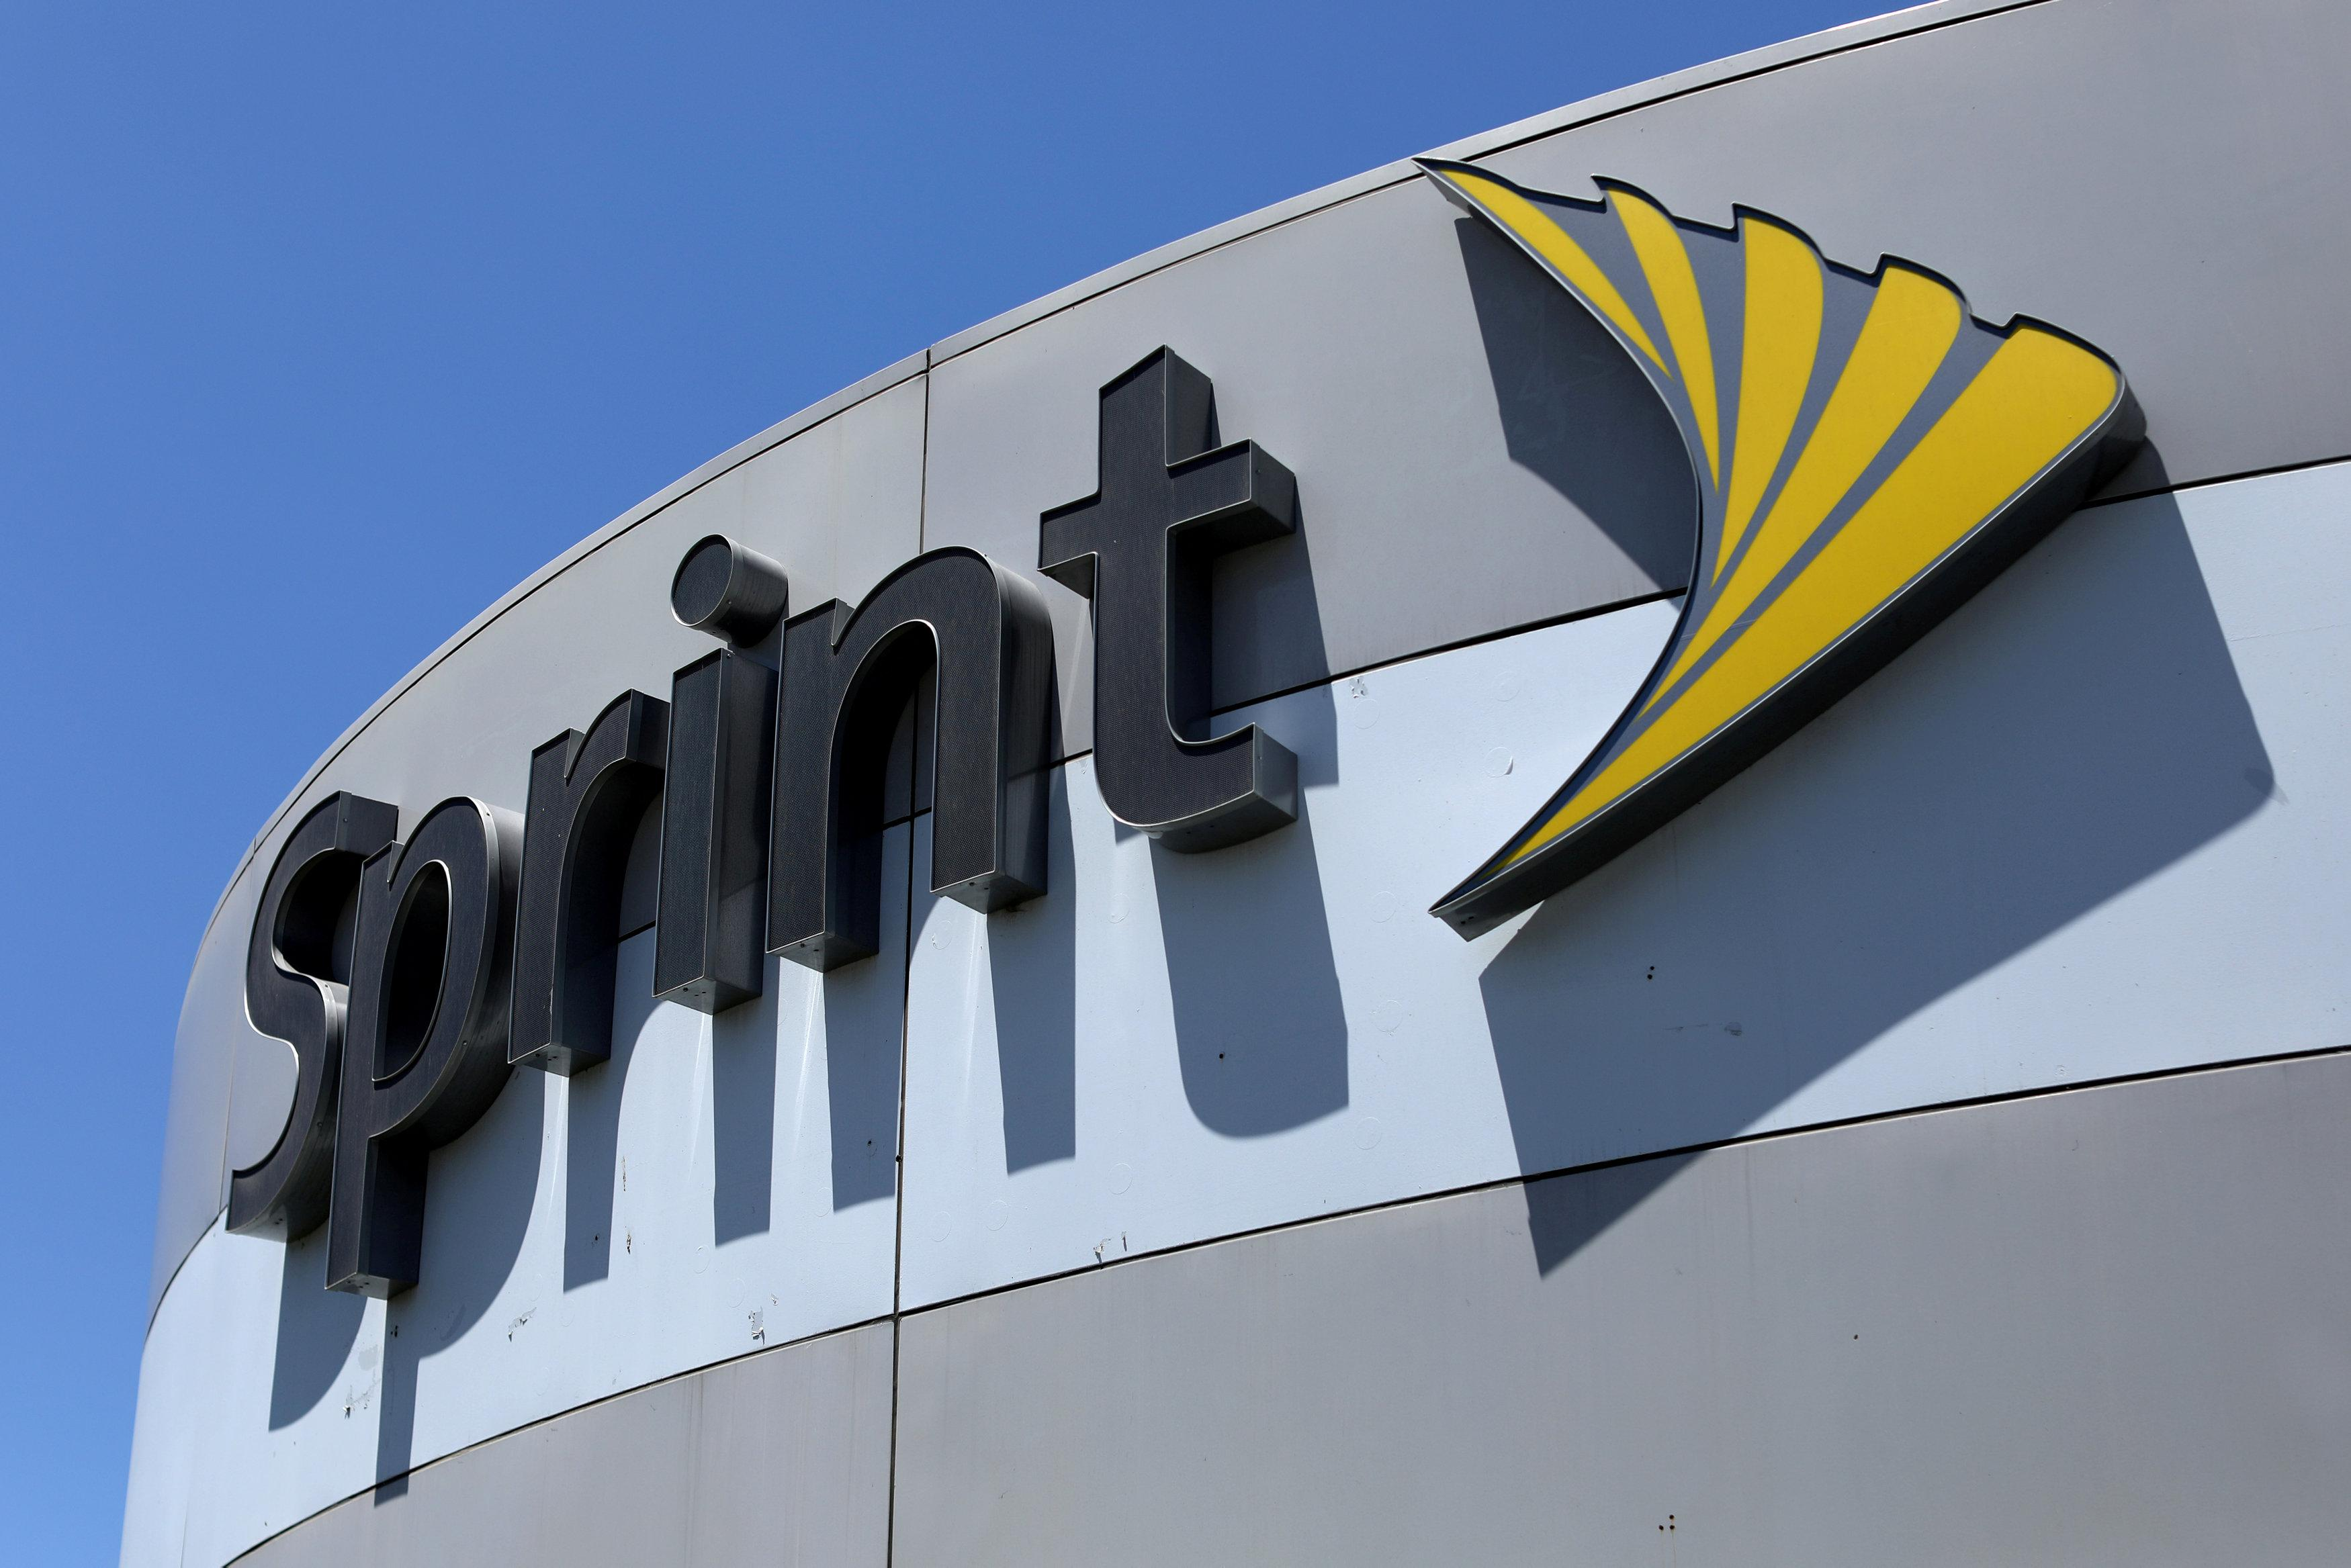 A Sprint store sign is shown in El Cajon, California, Aug. 8, 2017. Mike Blake